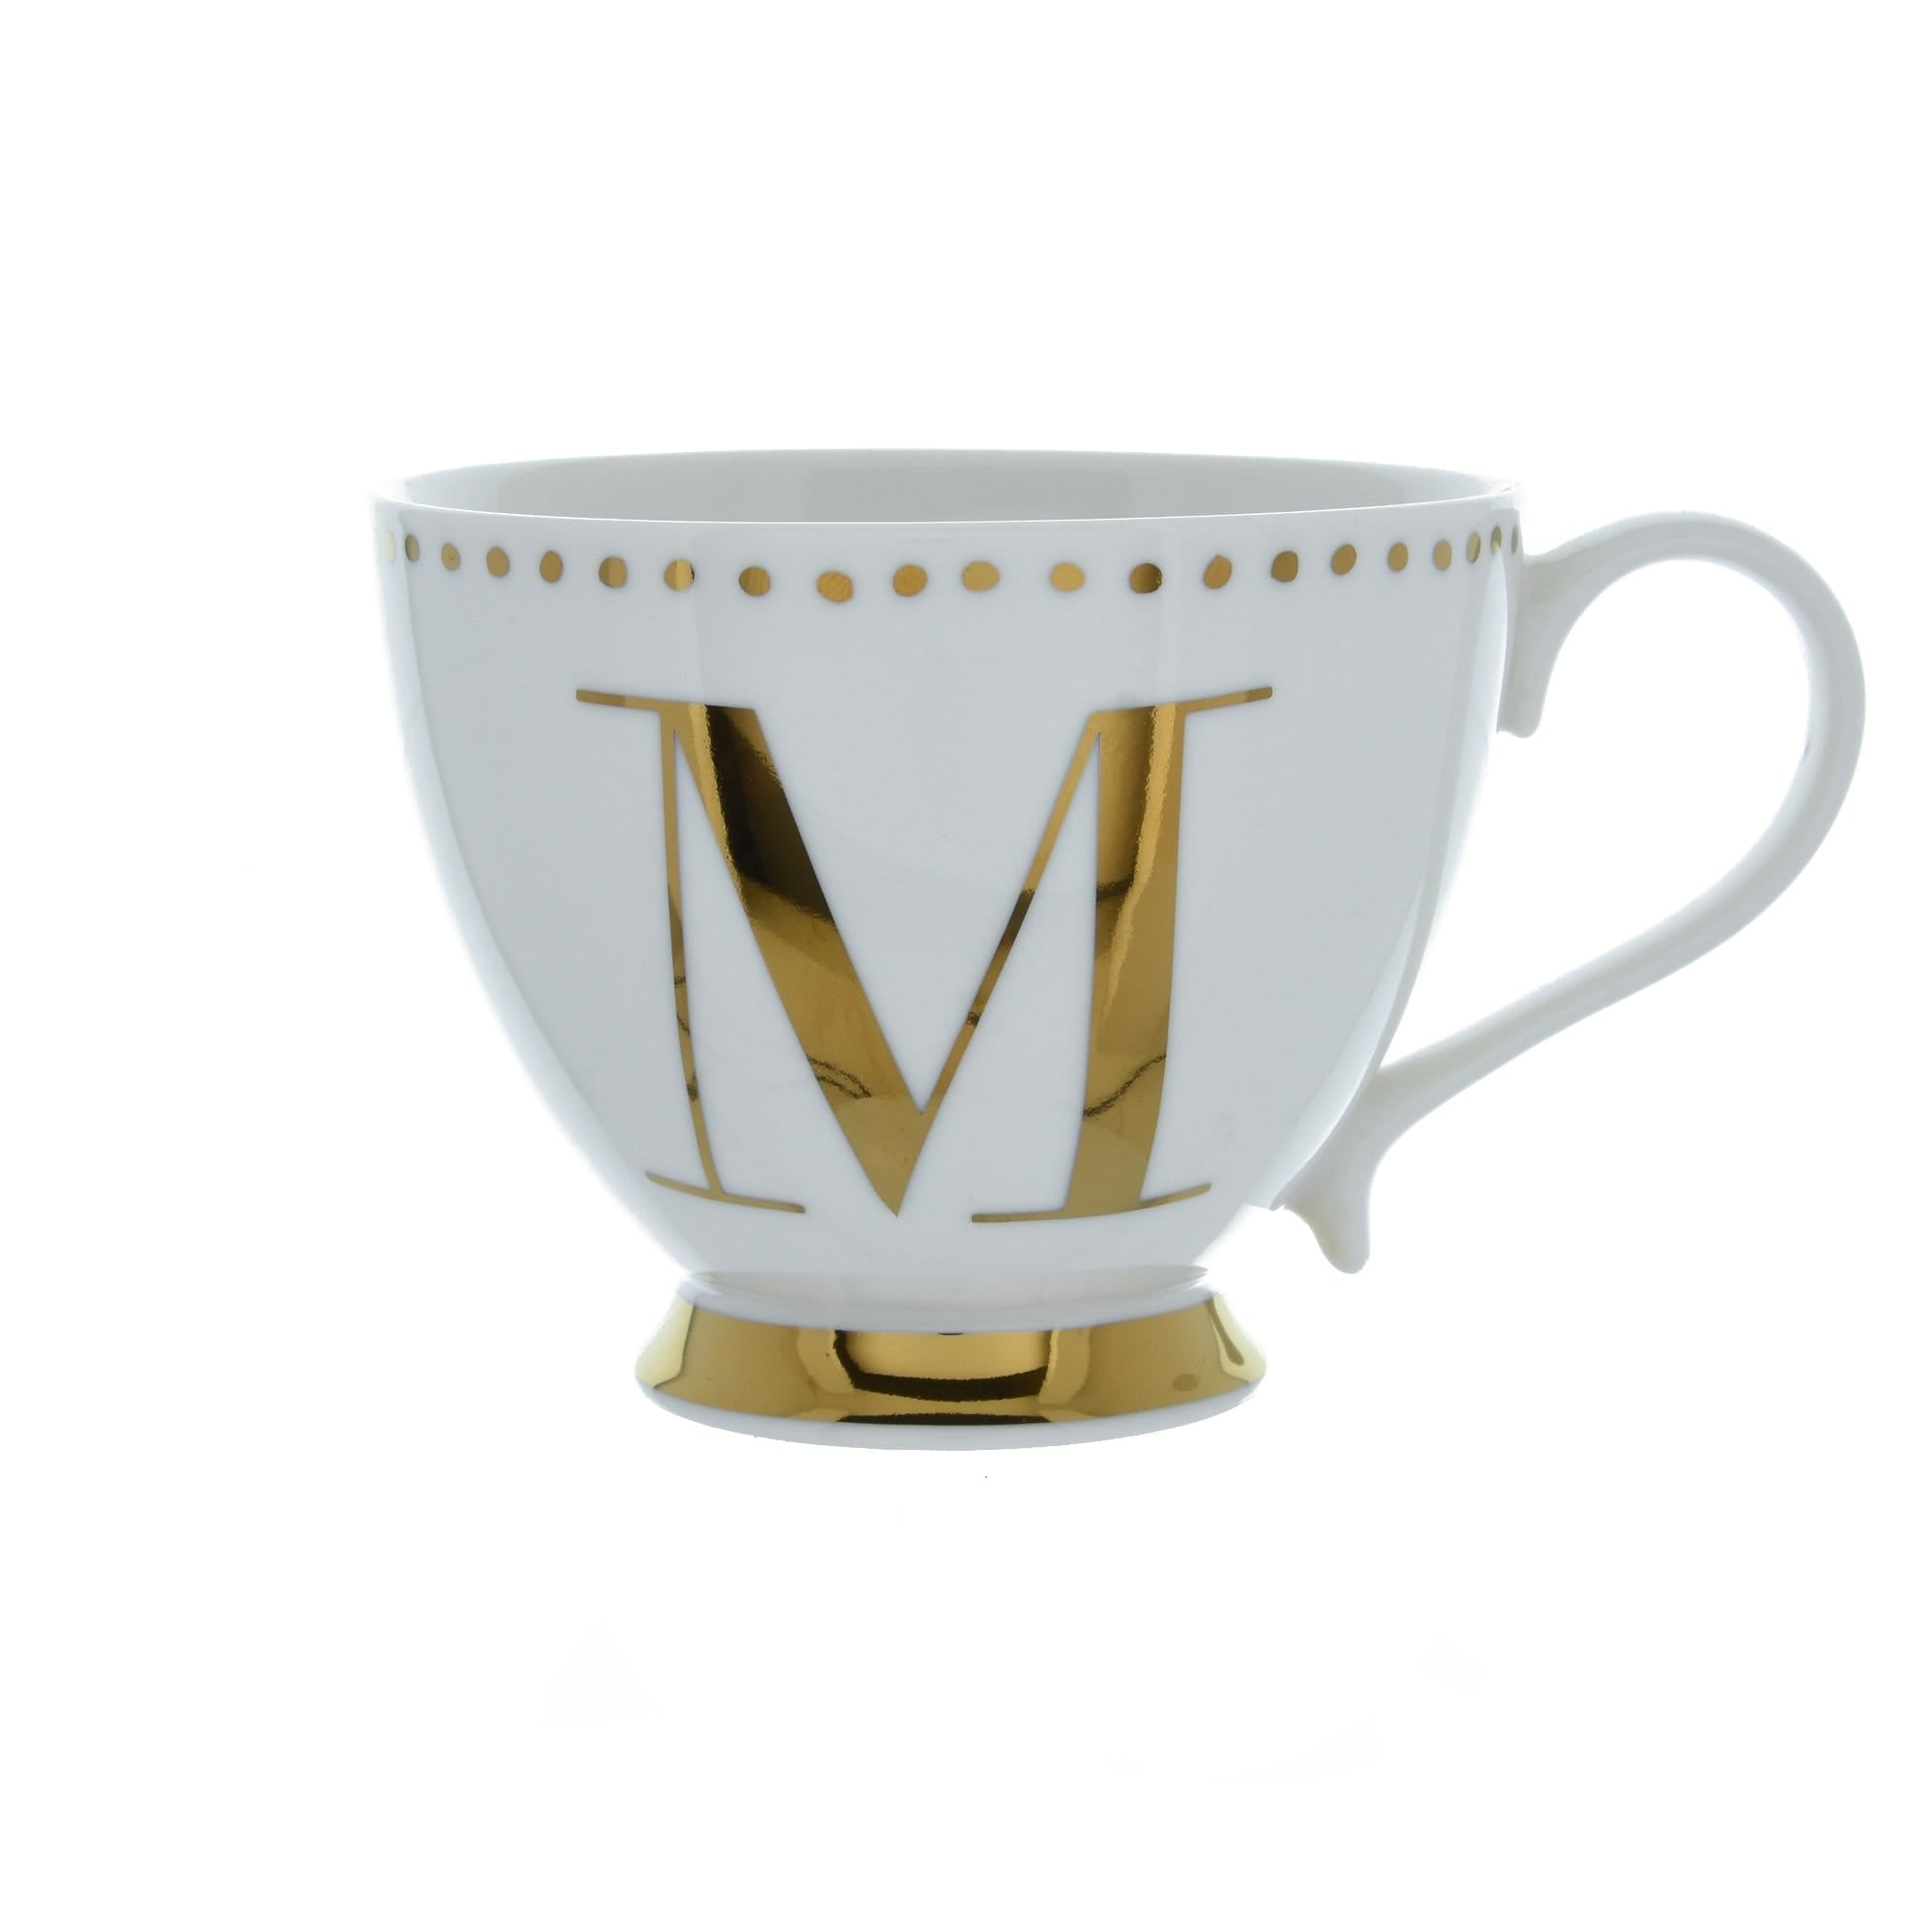 Candlelight Home Cups Initial Footed Mug M Gold Electroplated 9cm 6PK